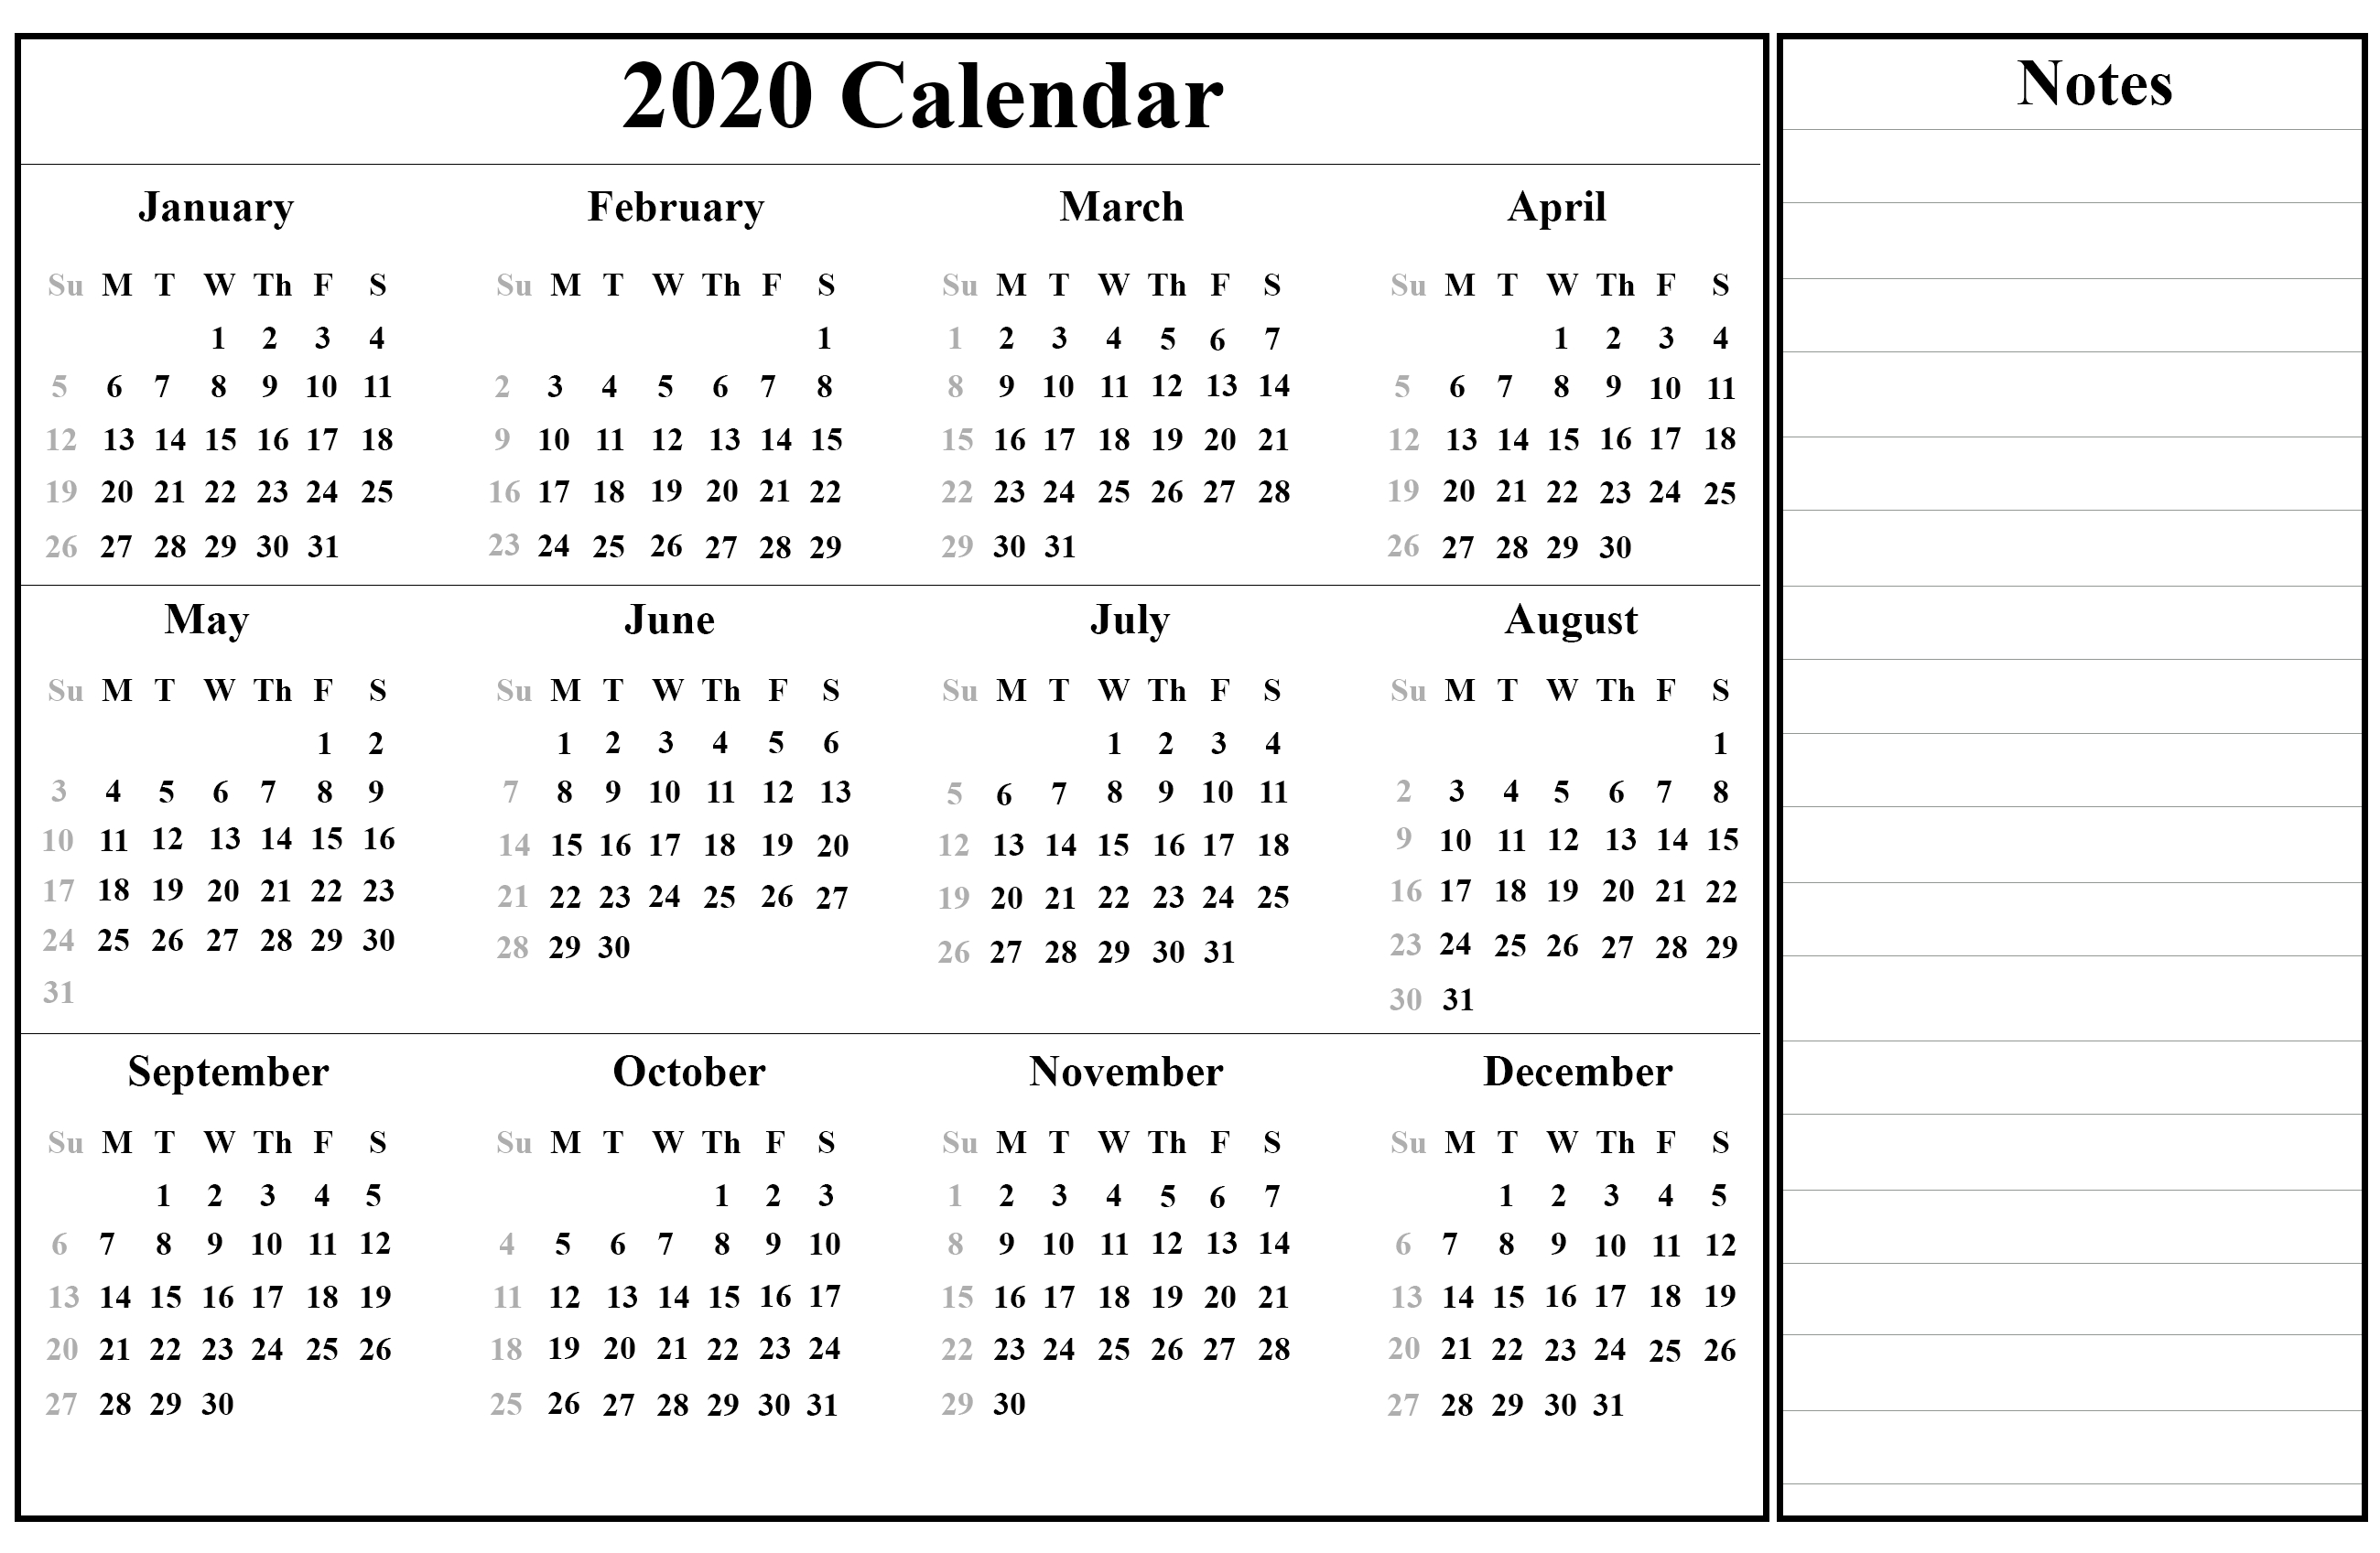 Printable Yearly Calendar 2020 Template With Holidays [Pdf, Word pertaining to Free Printable 2020 Calendar With Space To Write